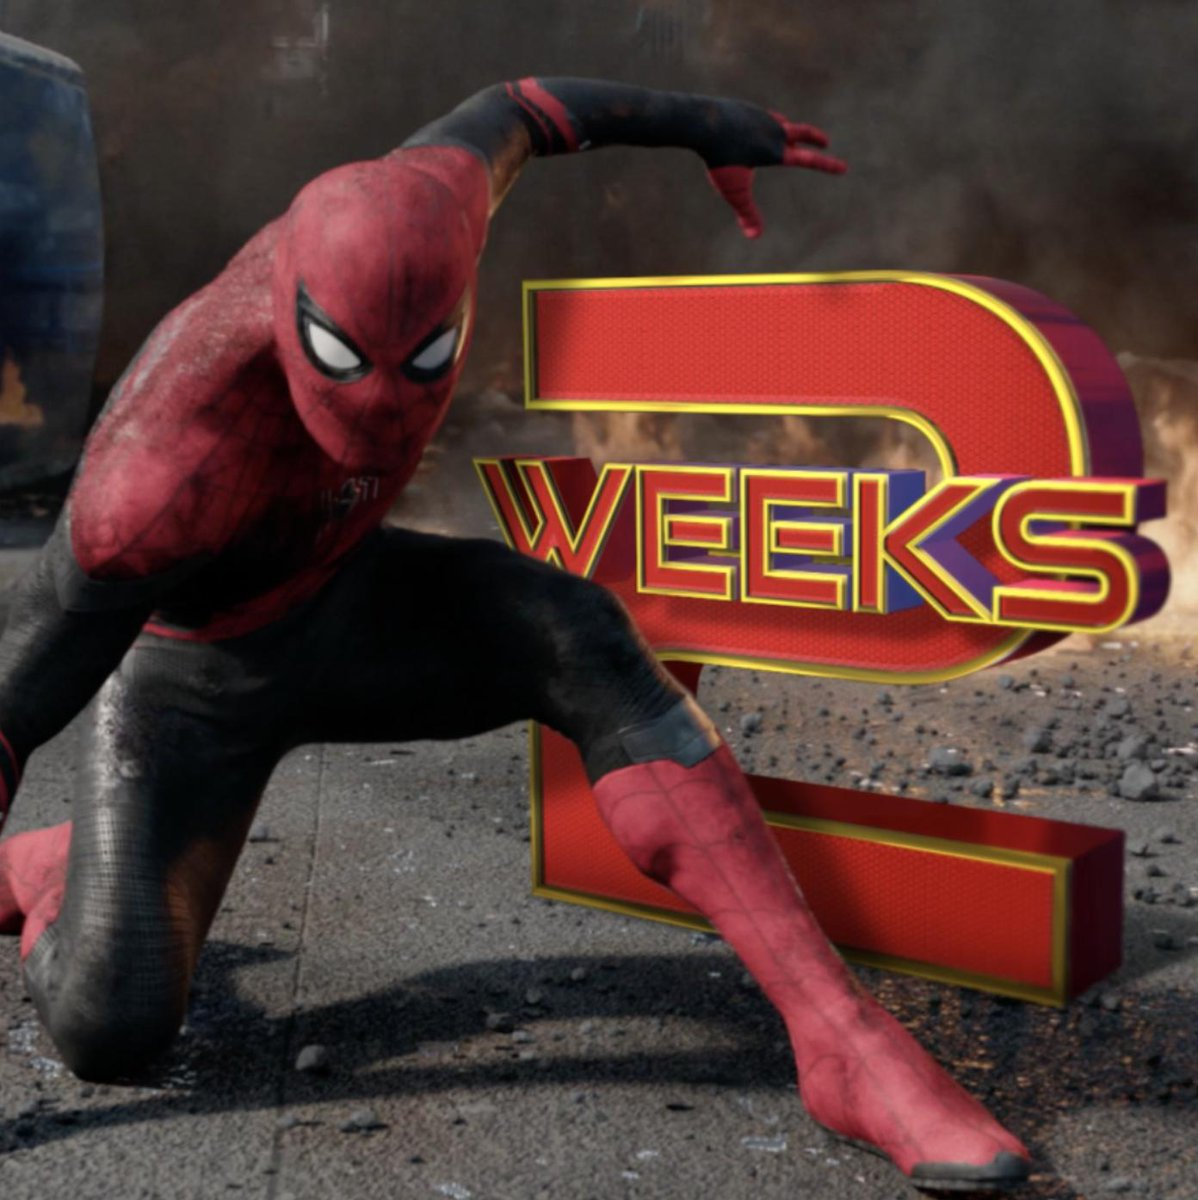 Two weeks. #SpiderManFarFromHome http://bit.ly/FarFromHomeTix